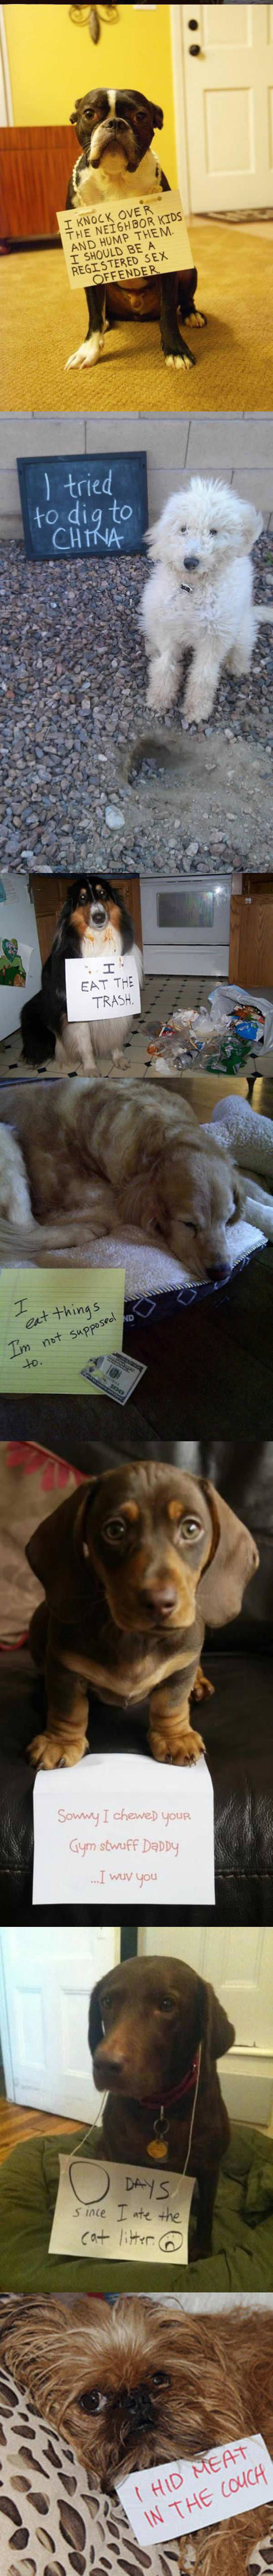 funny-note-shame-dogs-mess-confessions-couch